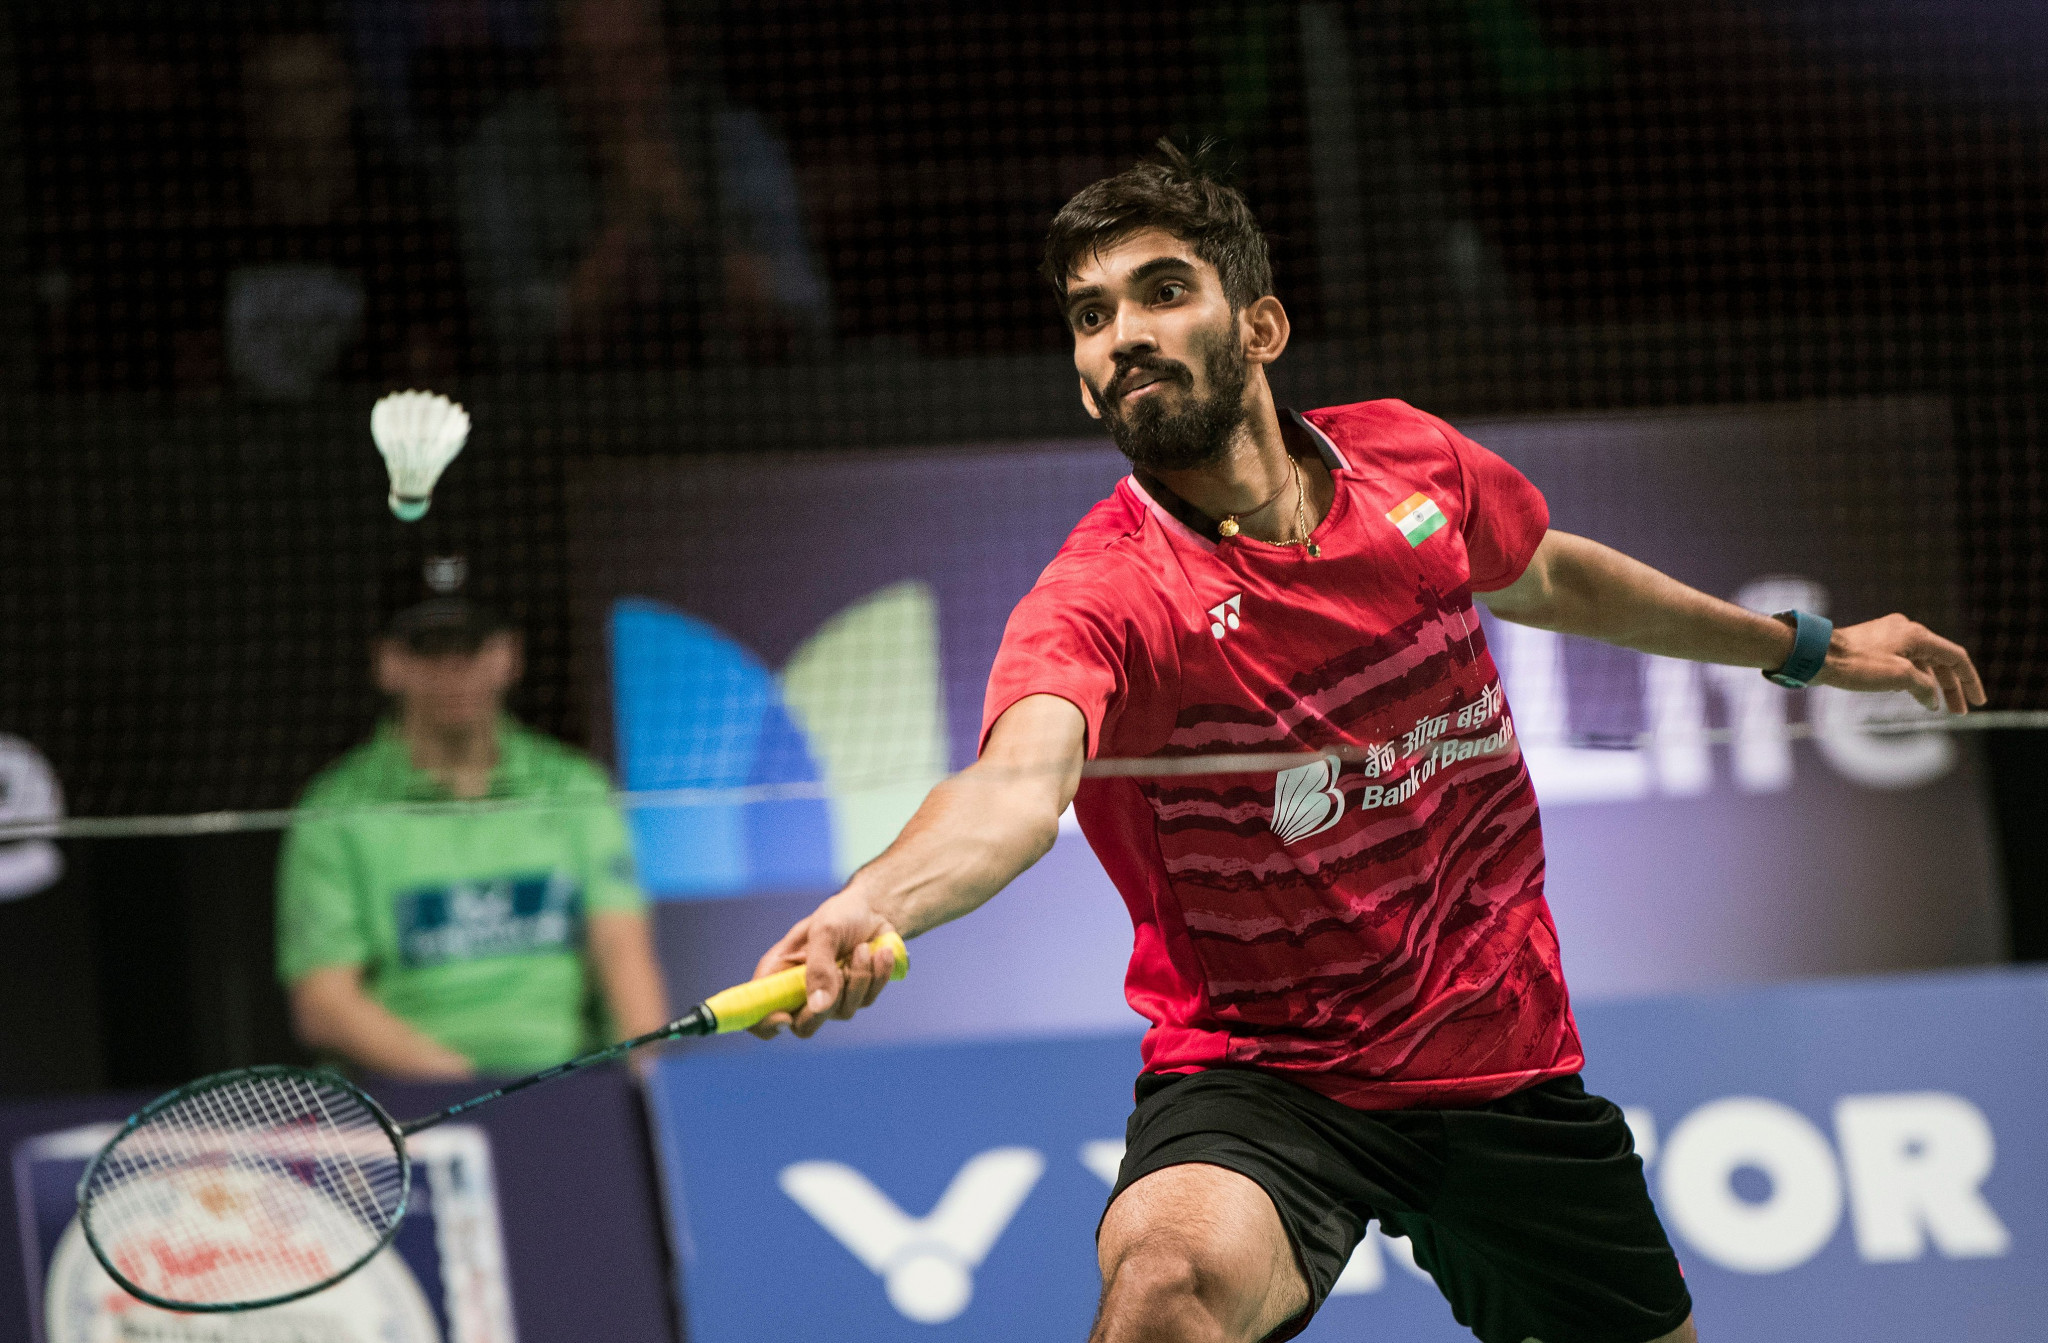 Srikanth withdraws from BWF China Open as injury precaution